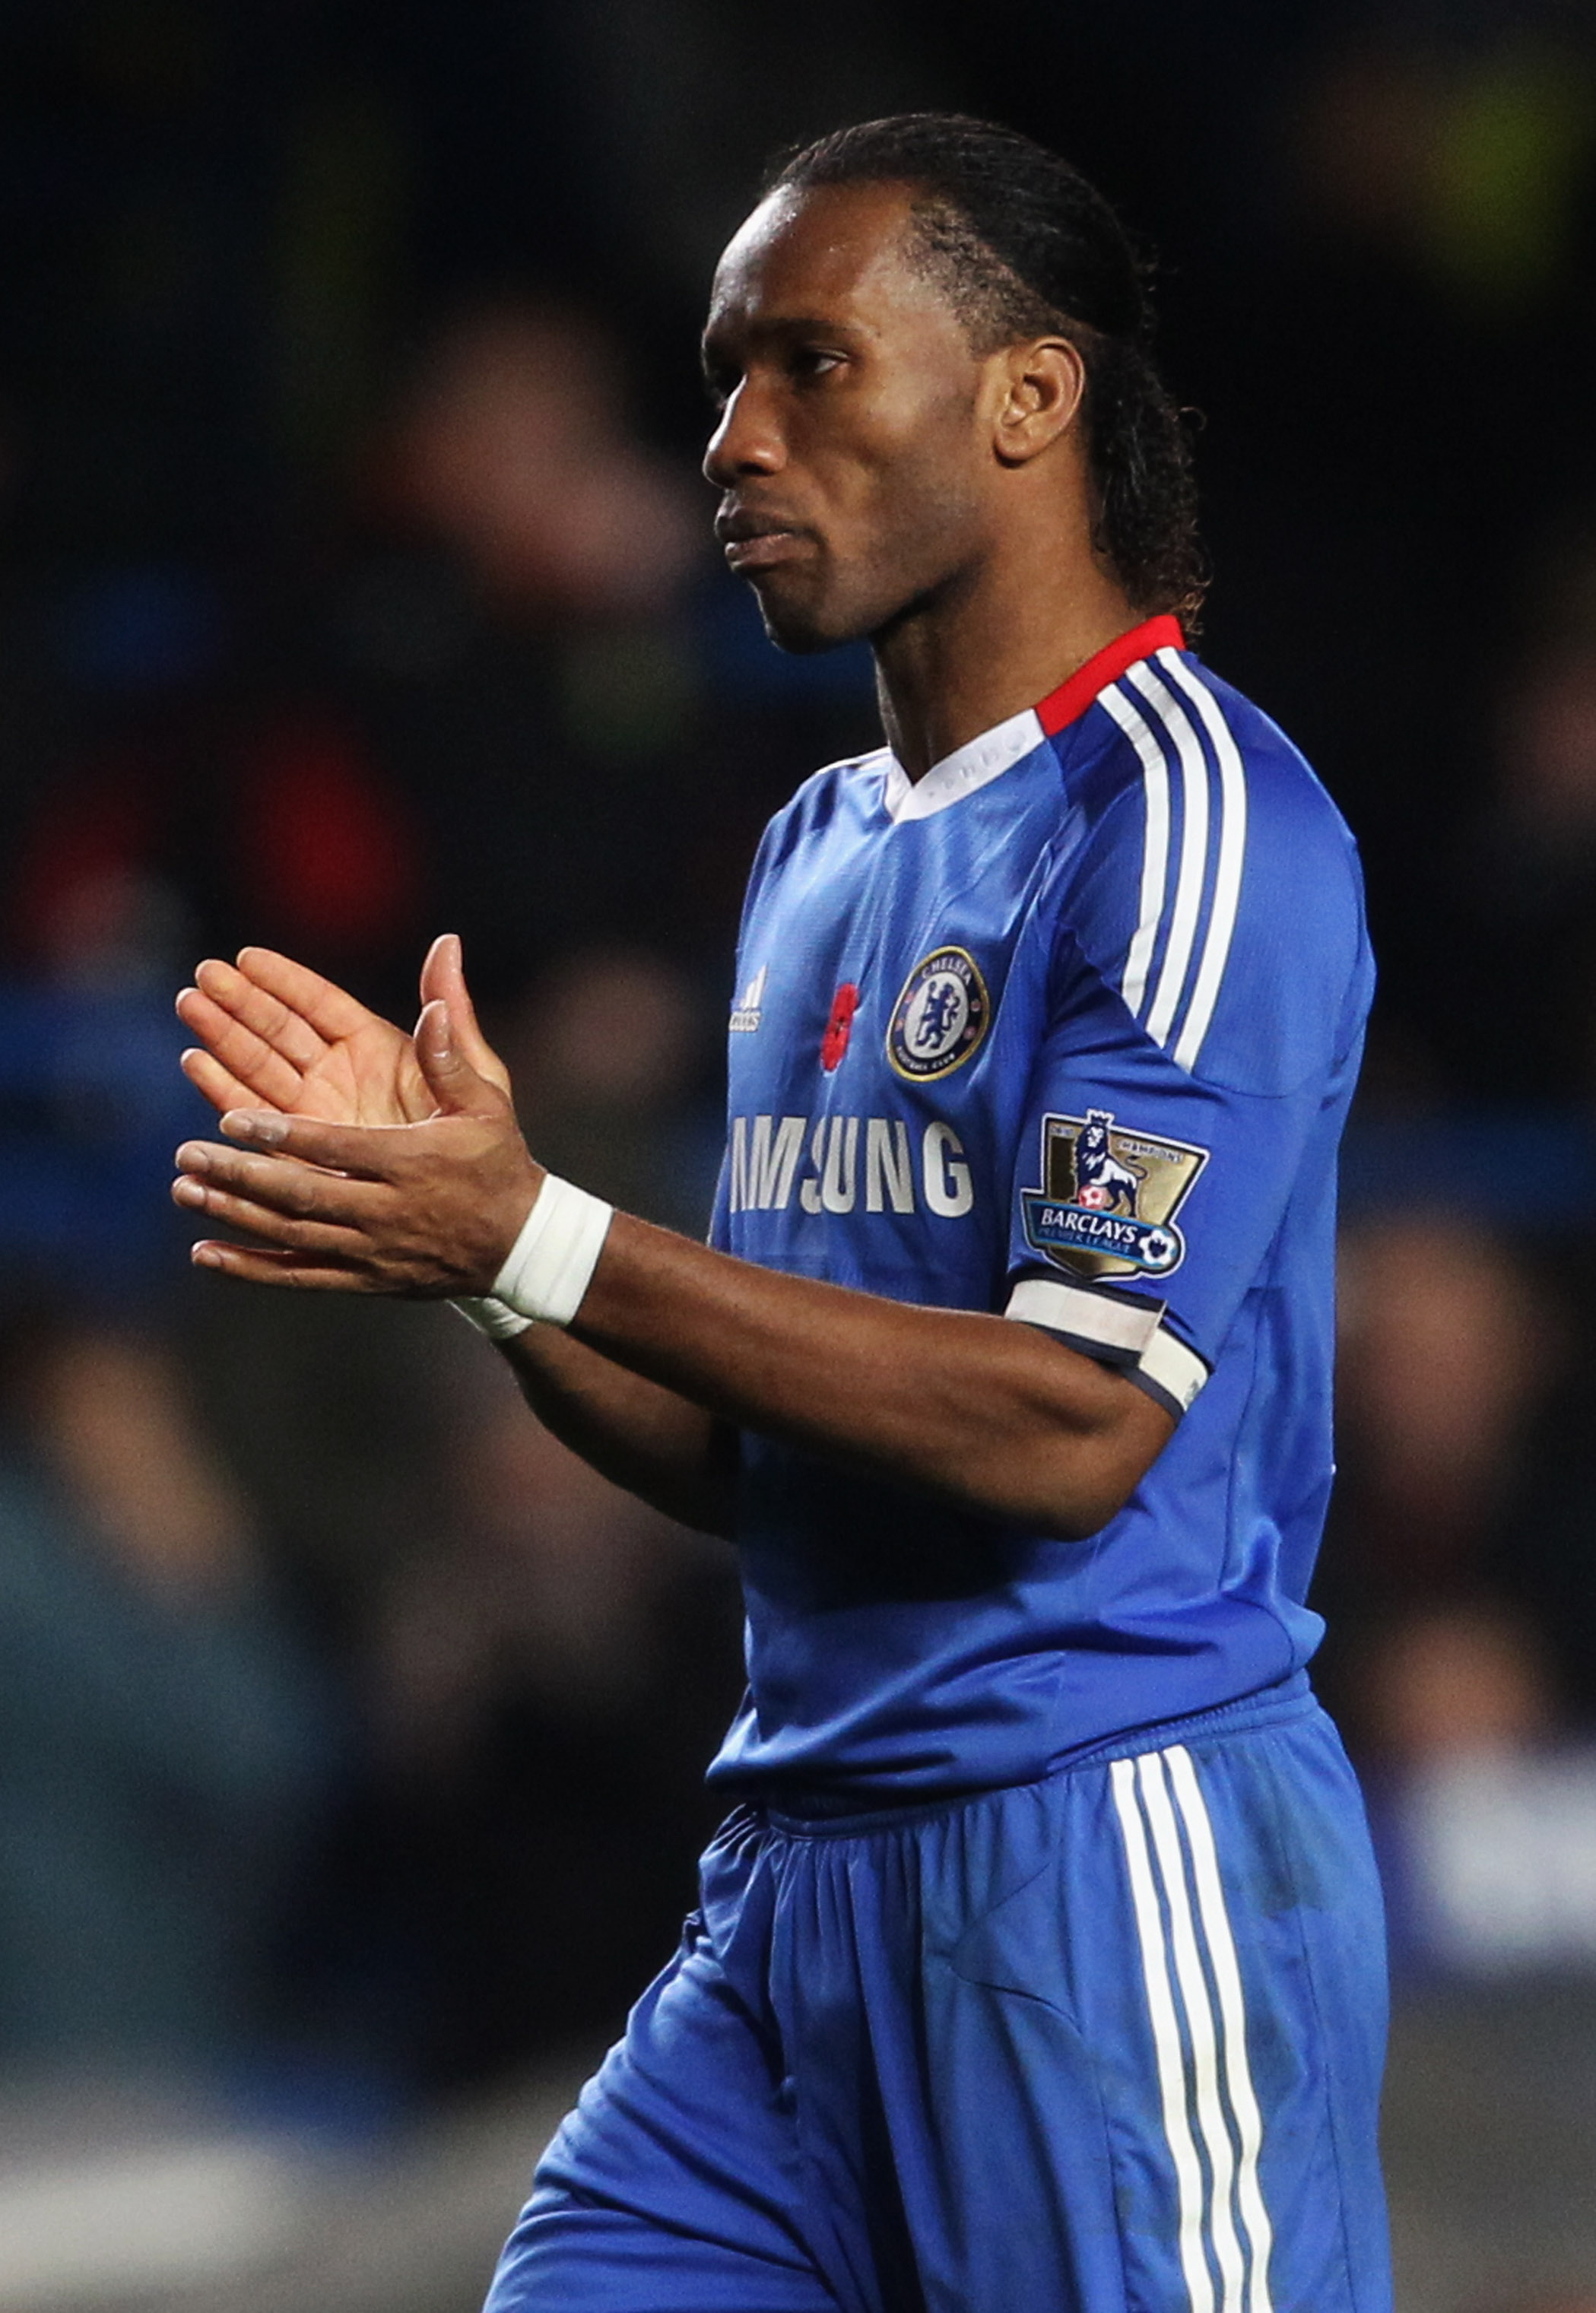 LONDON, ENGLAND - NOVEMBER 14:  Didier Drogba of Chelsea applauds during the Barclays Premier League match between Chelsea and Sunderland at Stamford Bridge on November 14, 2010 in London, England.  (Photo by Scott Heavey/Getty Images)